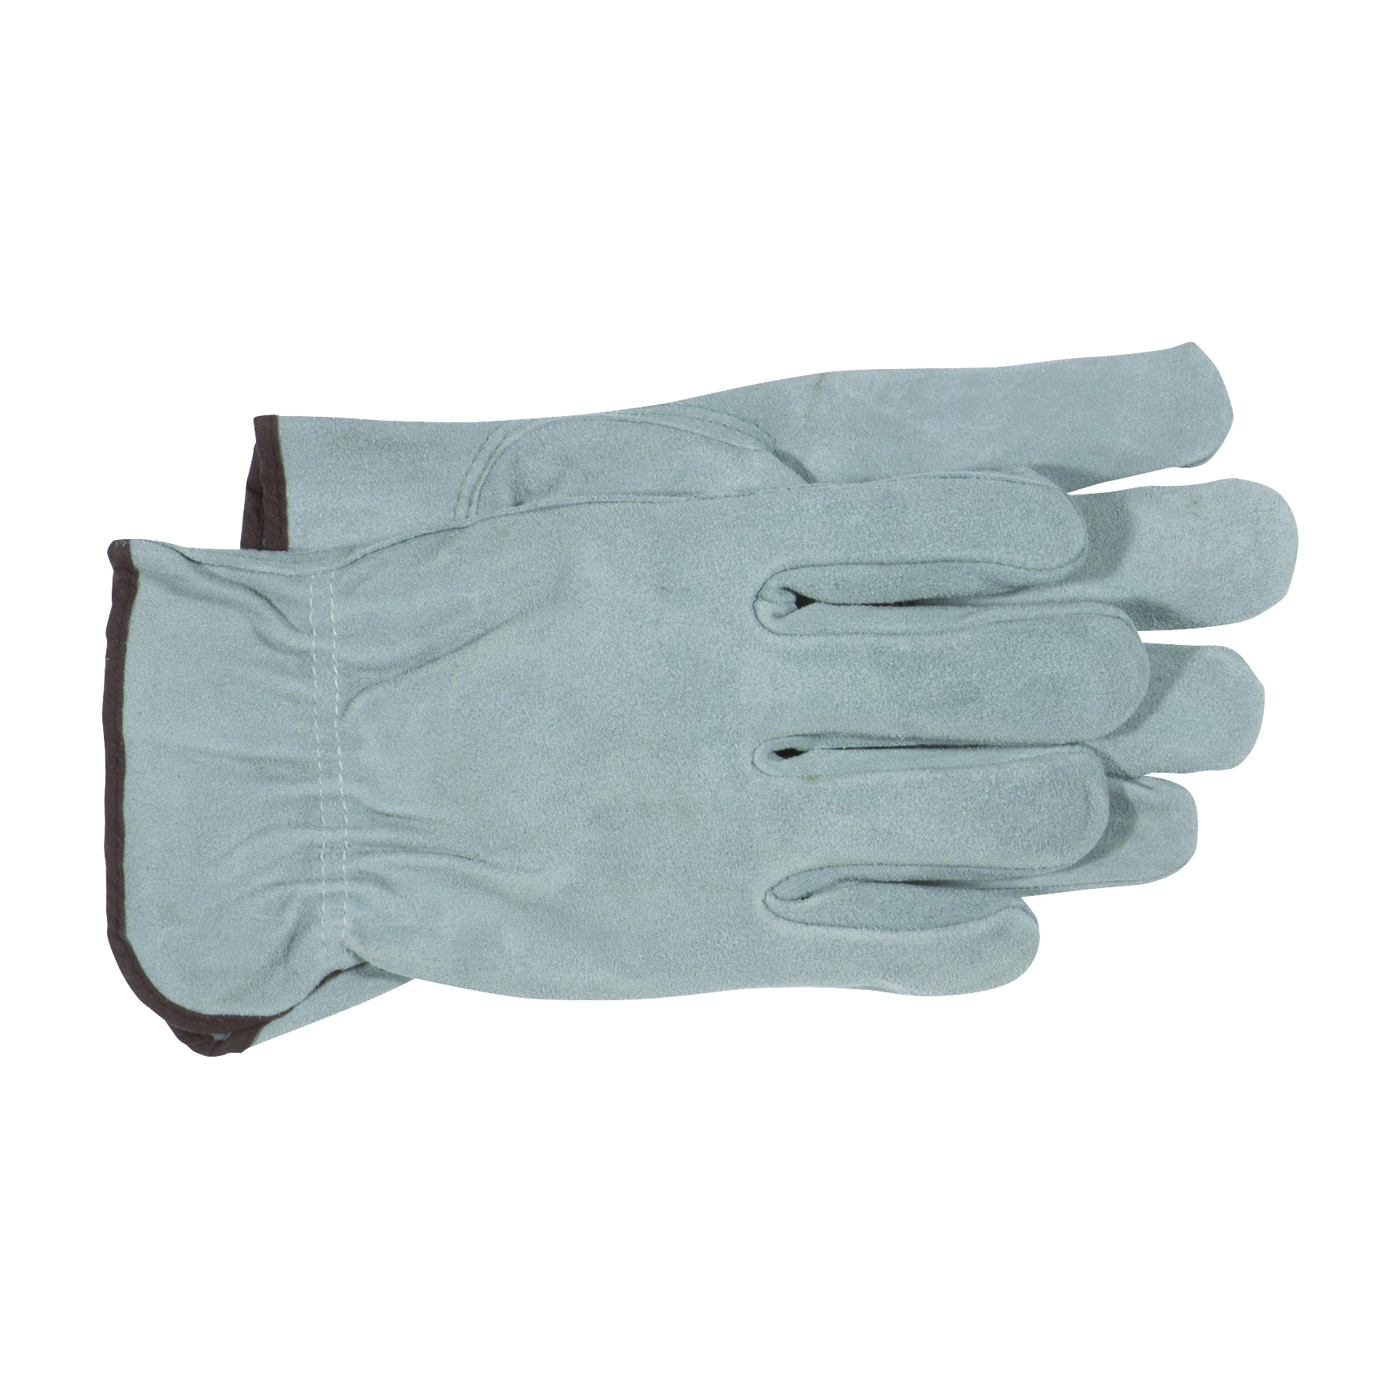 Picture of BOSS 4065J Driver Gloves, XL, Keystone Thumb, Open, Shirred Elastic Back Cuff, Cowhide Leather, Gray